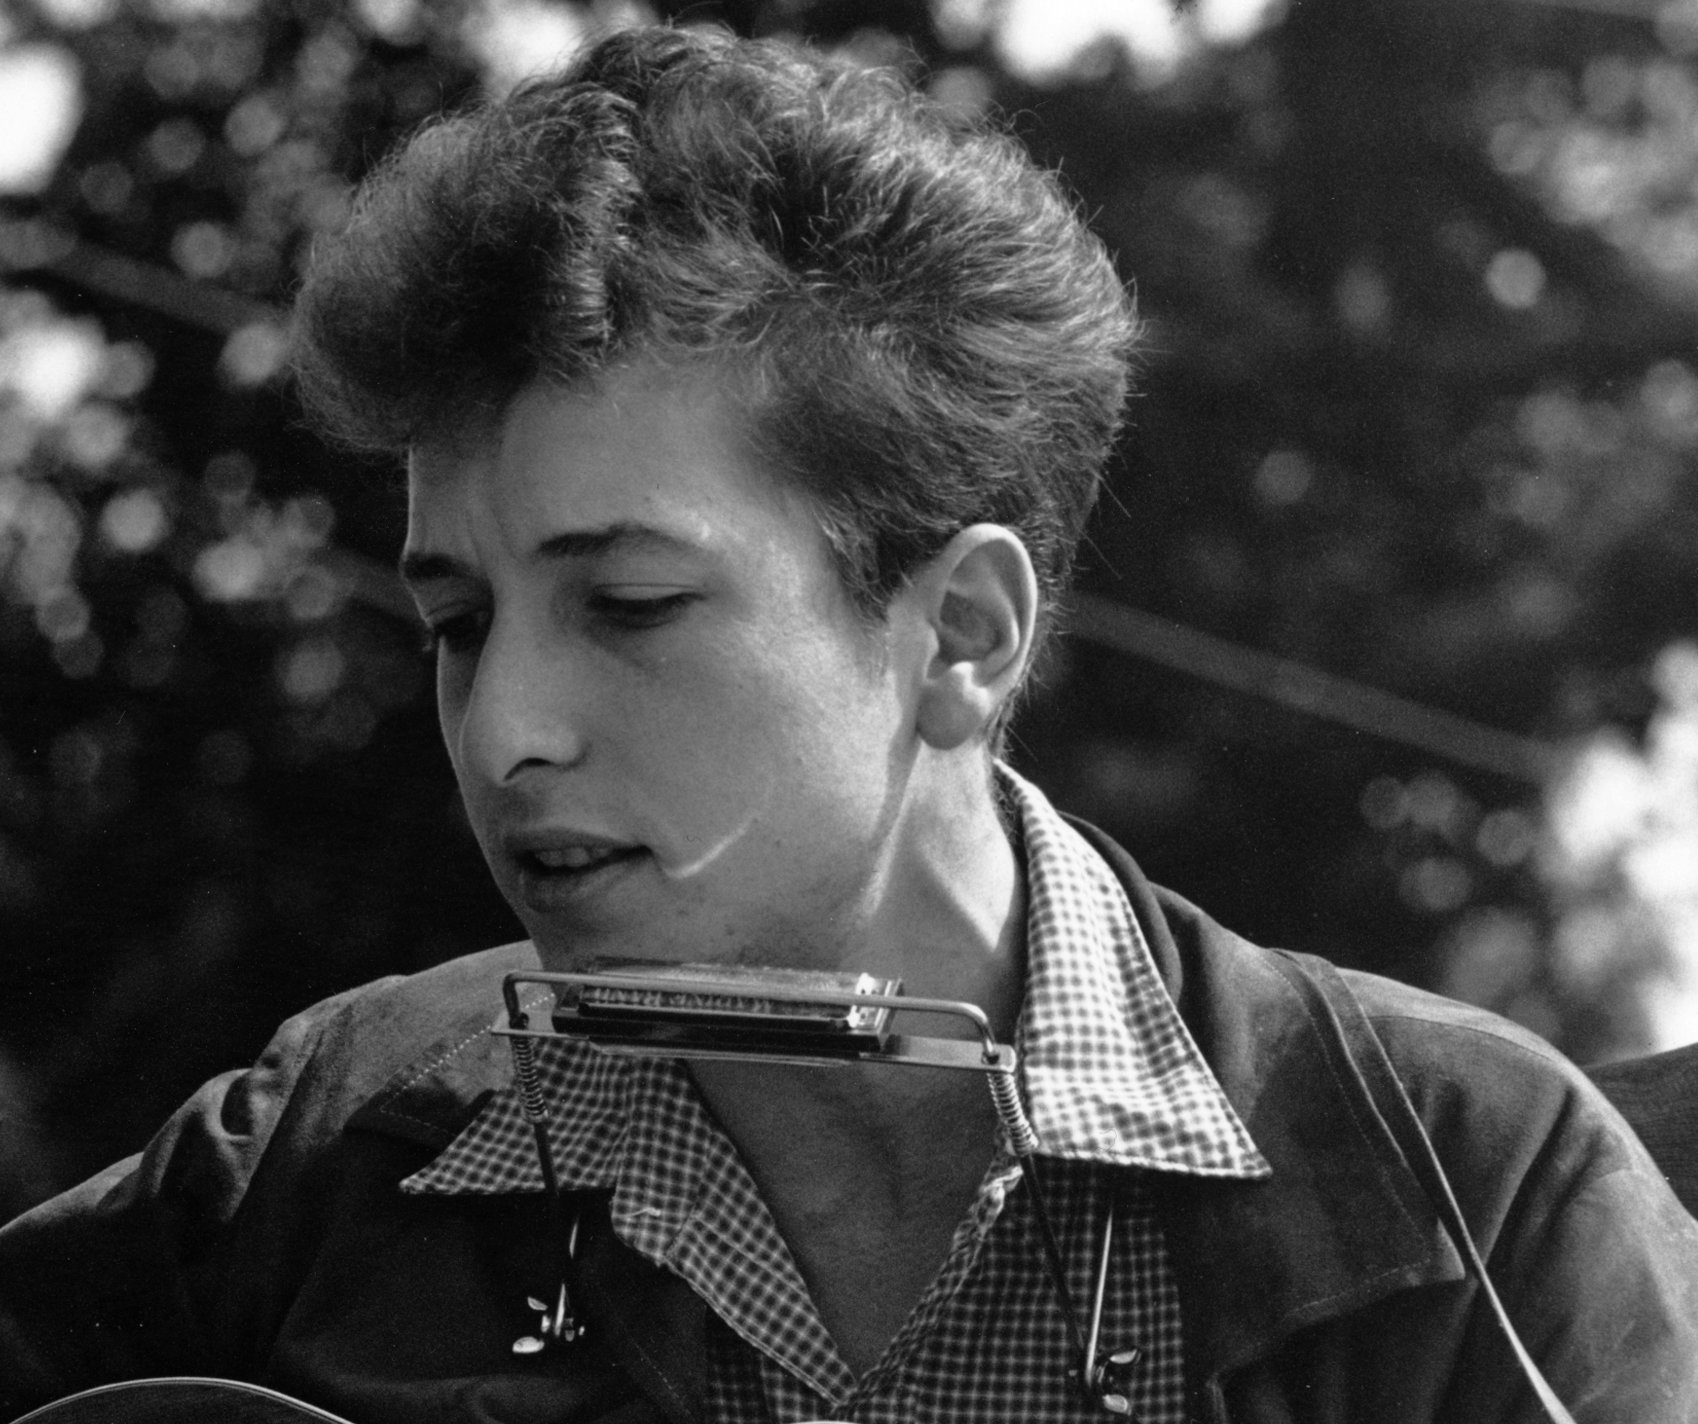 <p>Bob Dylan at the Civil Rights March on Washington, D.C., in 1963.</p>